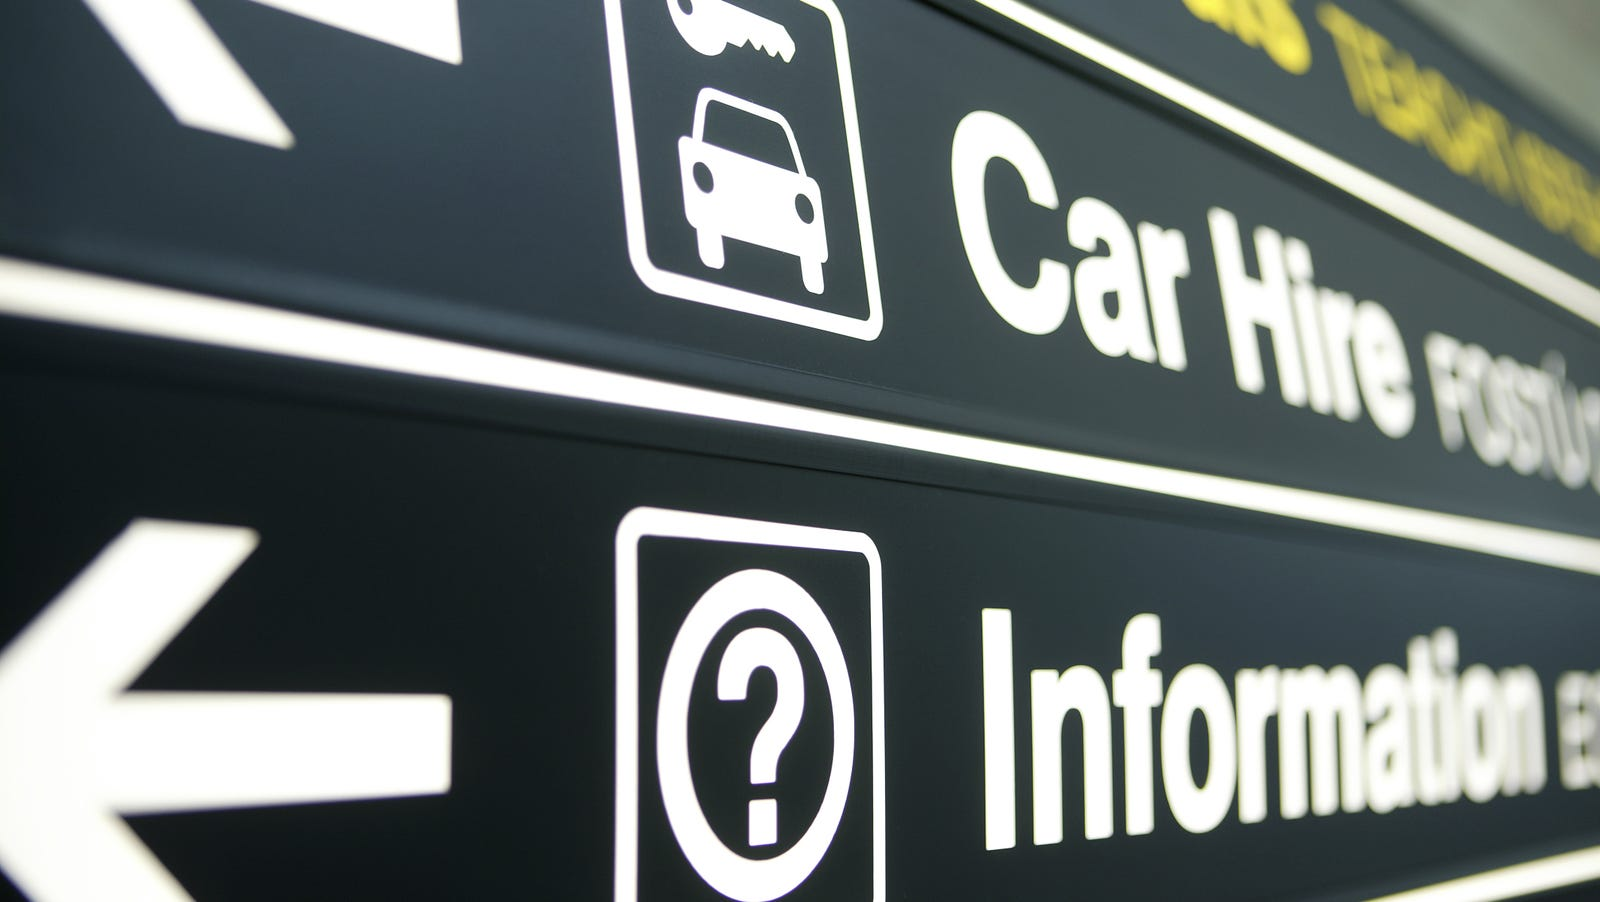 Overseas Car Insurance A Minefield For Travelers